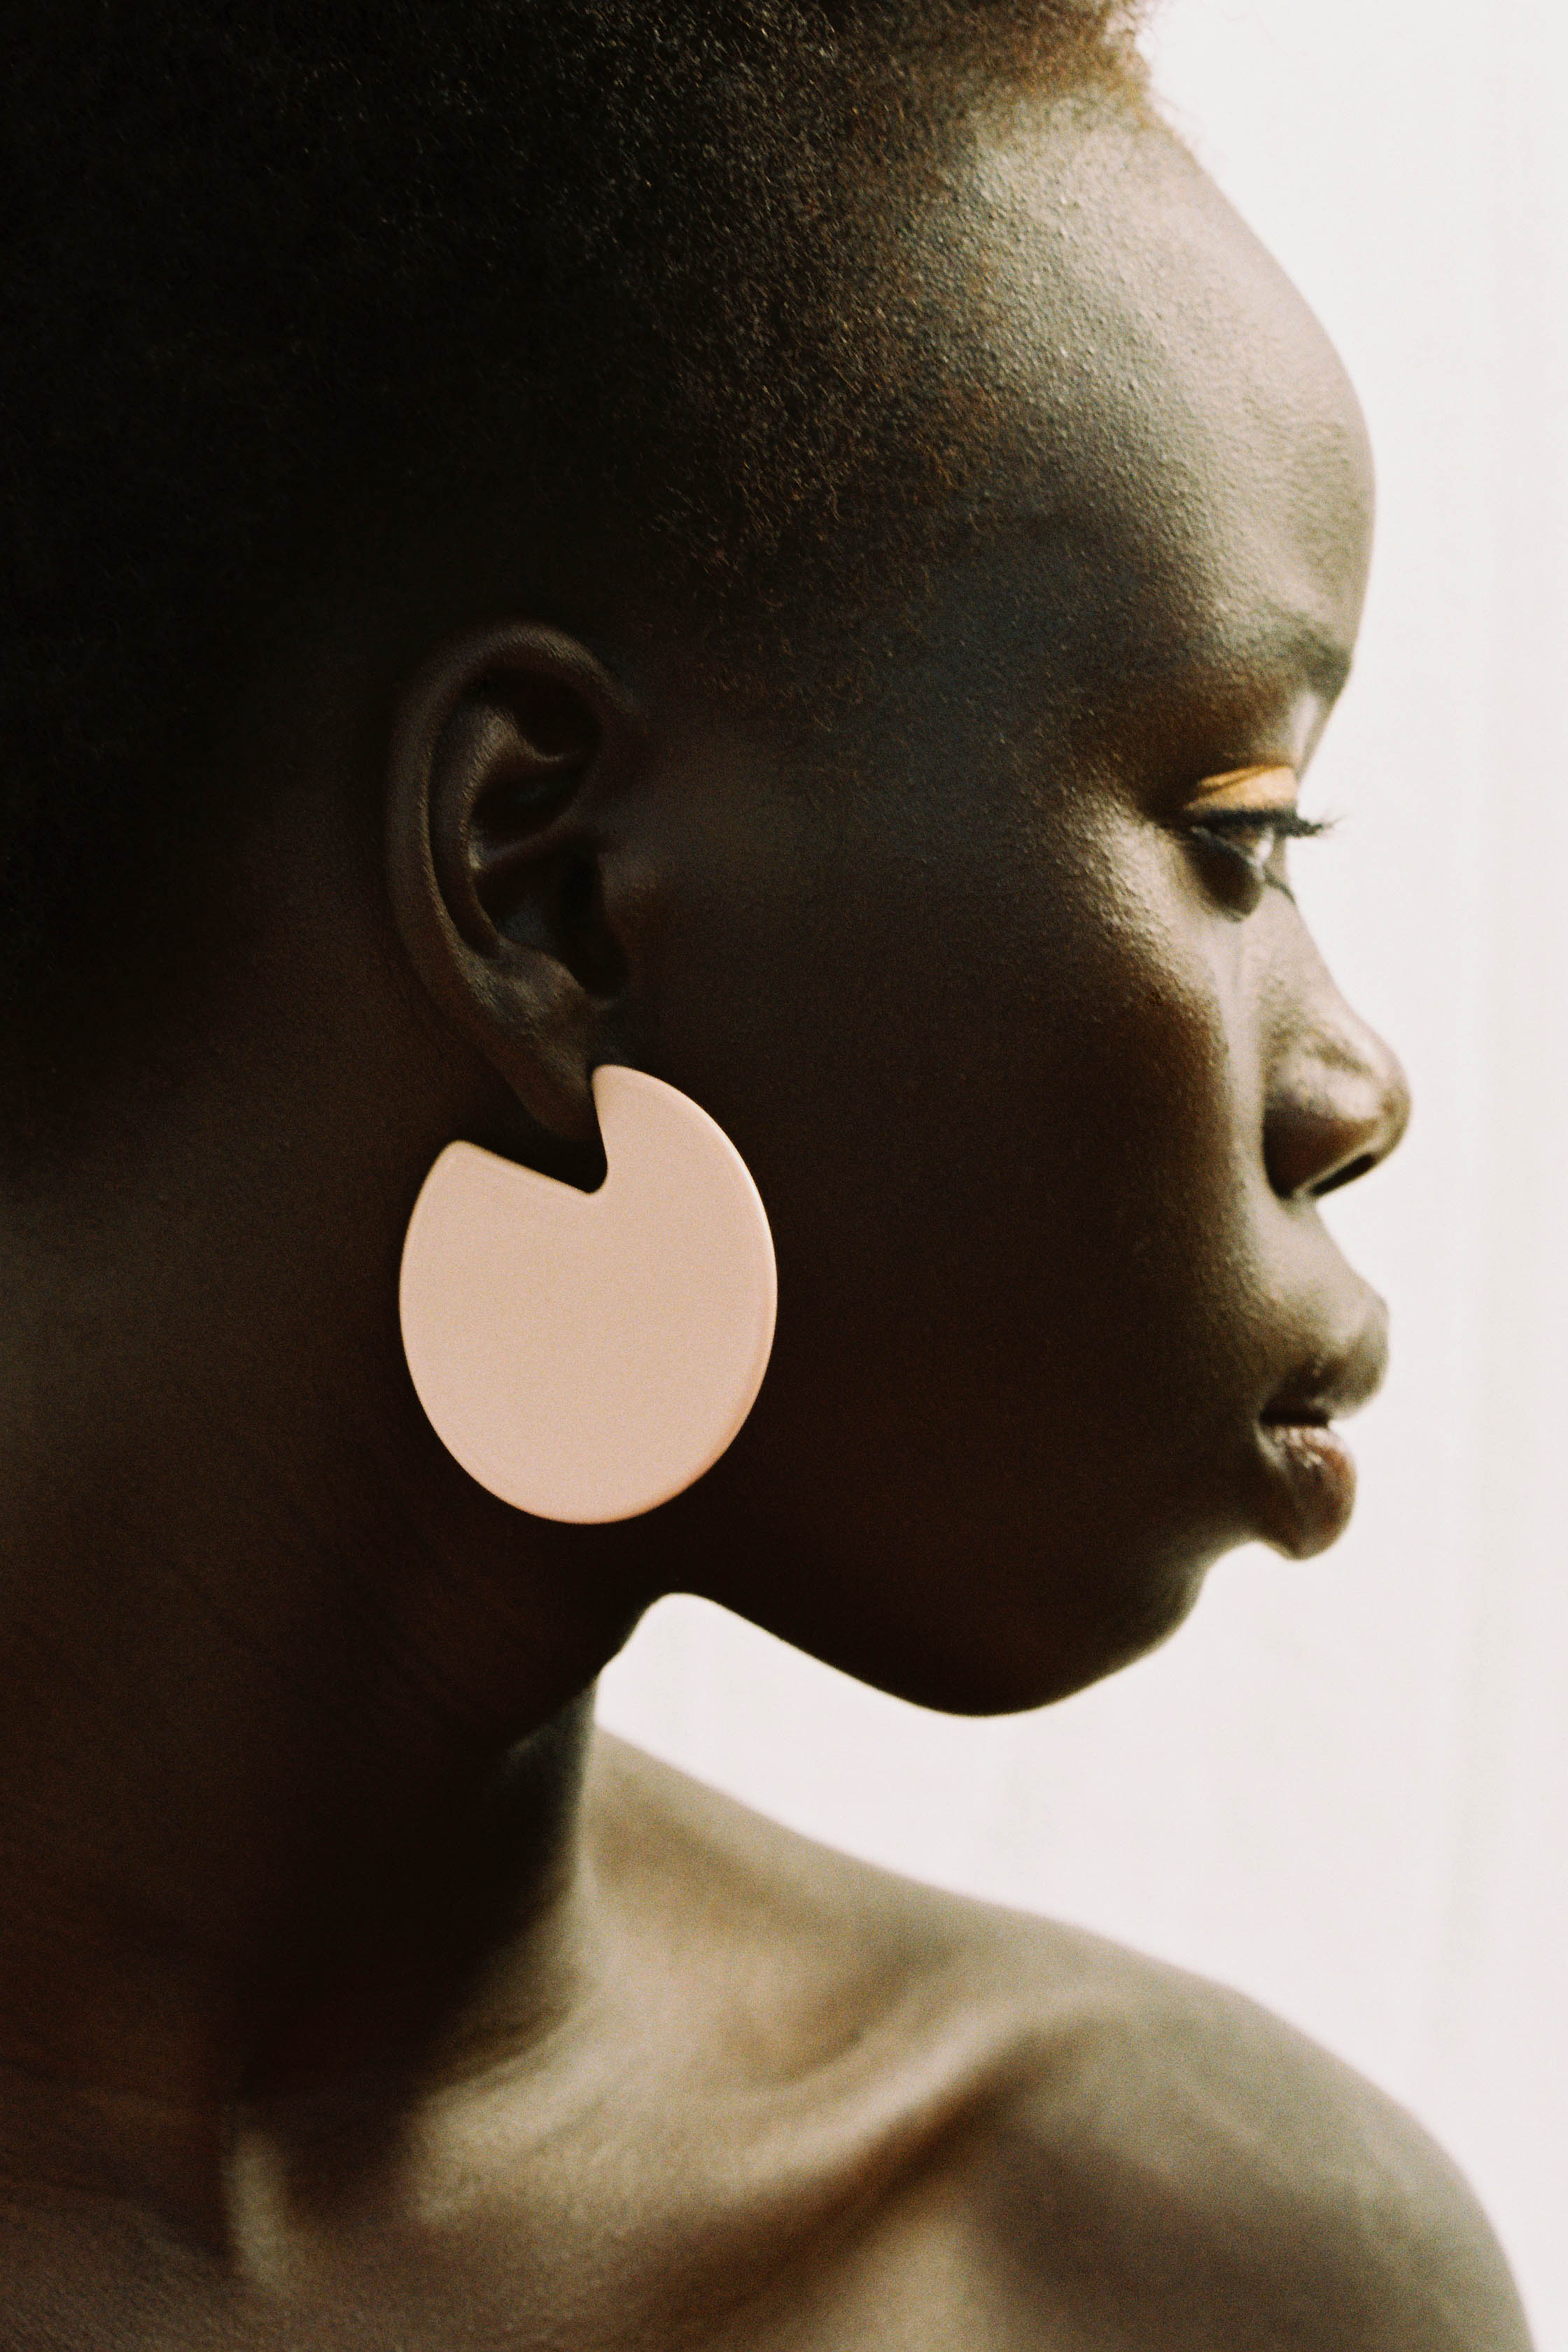 Clare Earrrings in Rose: $80 NZD from Mooma